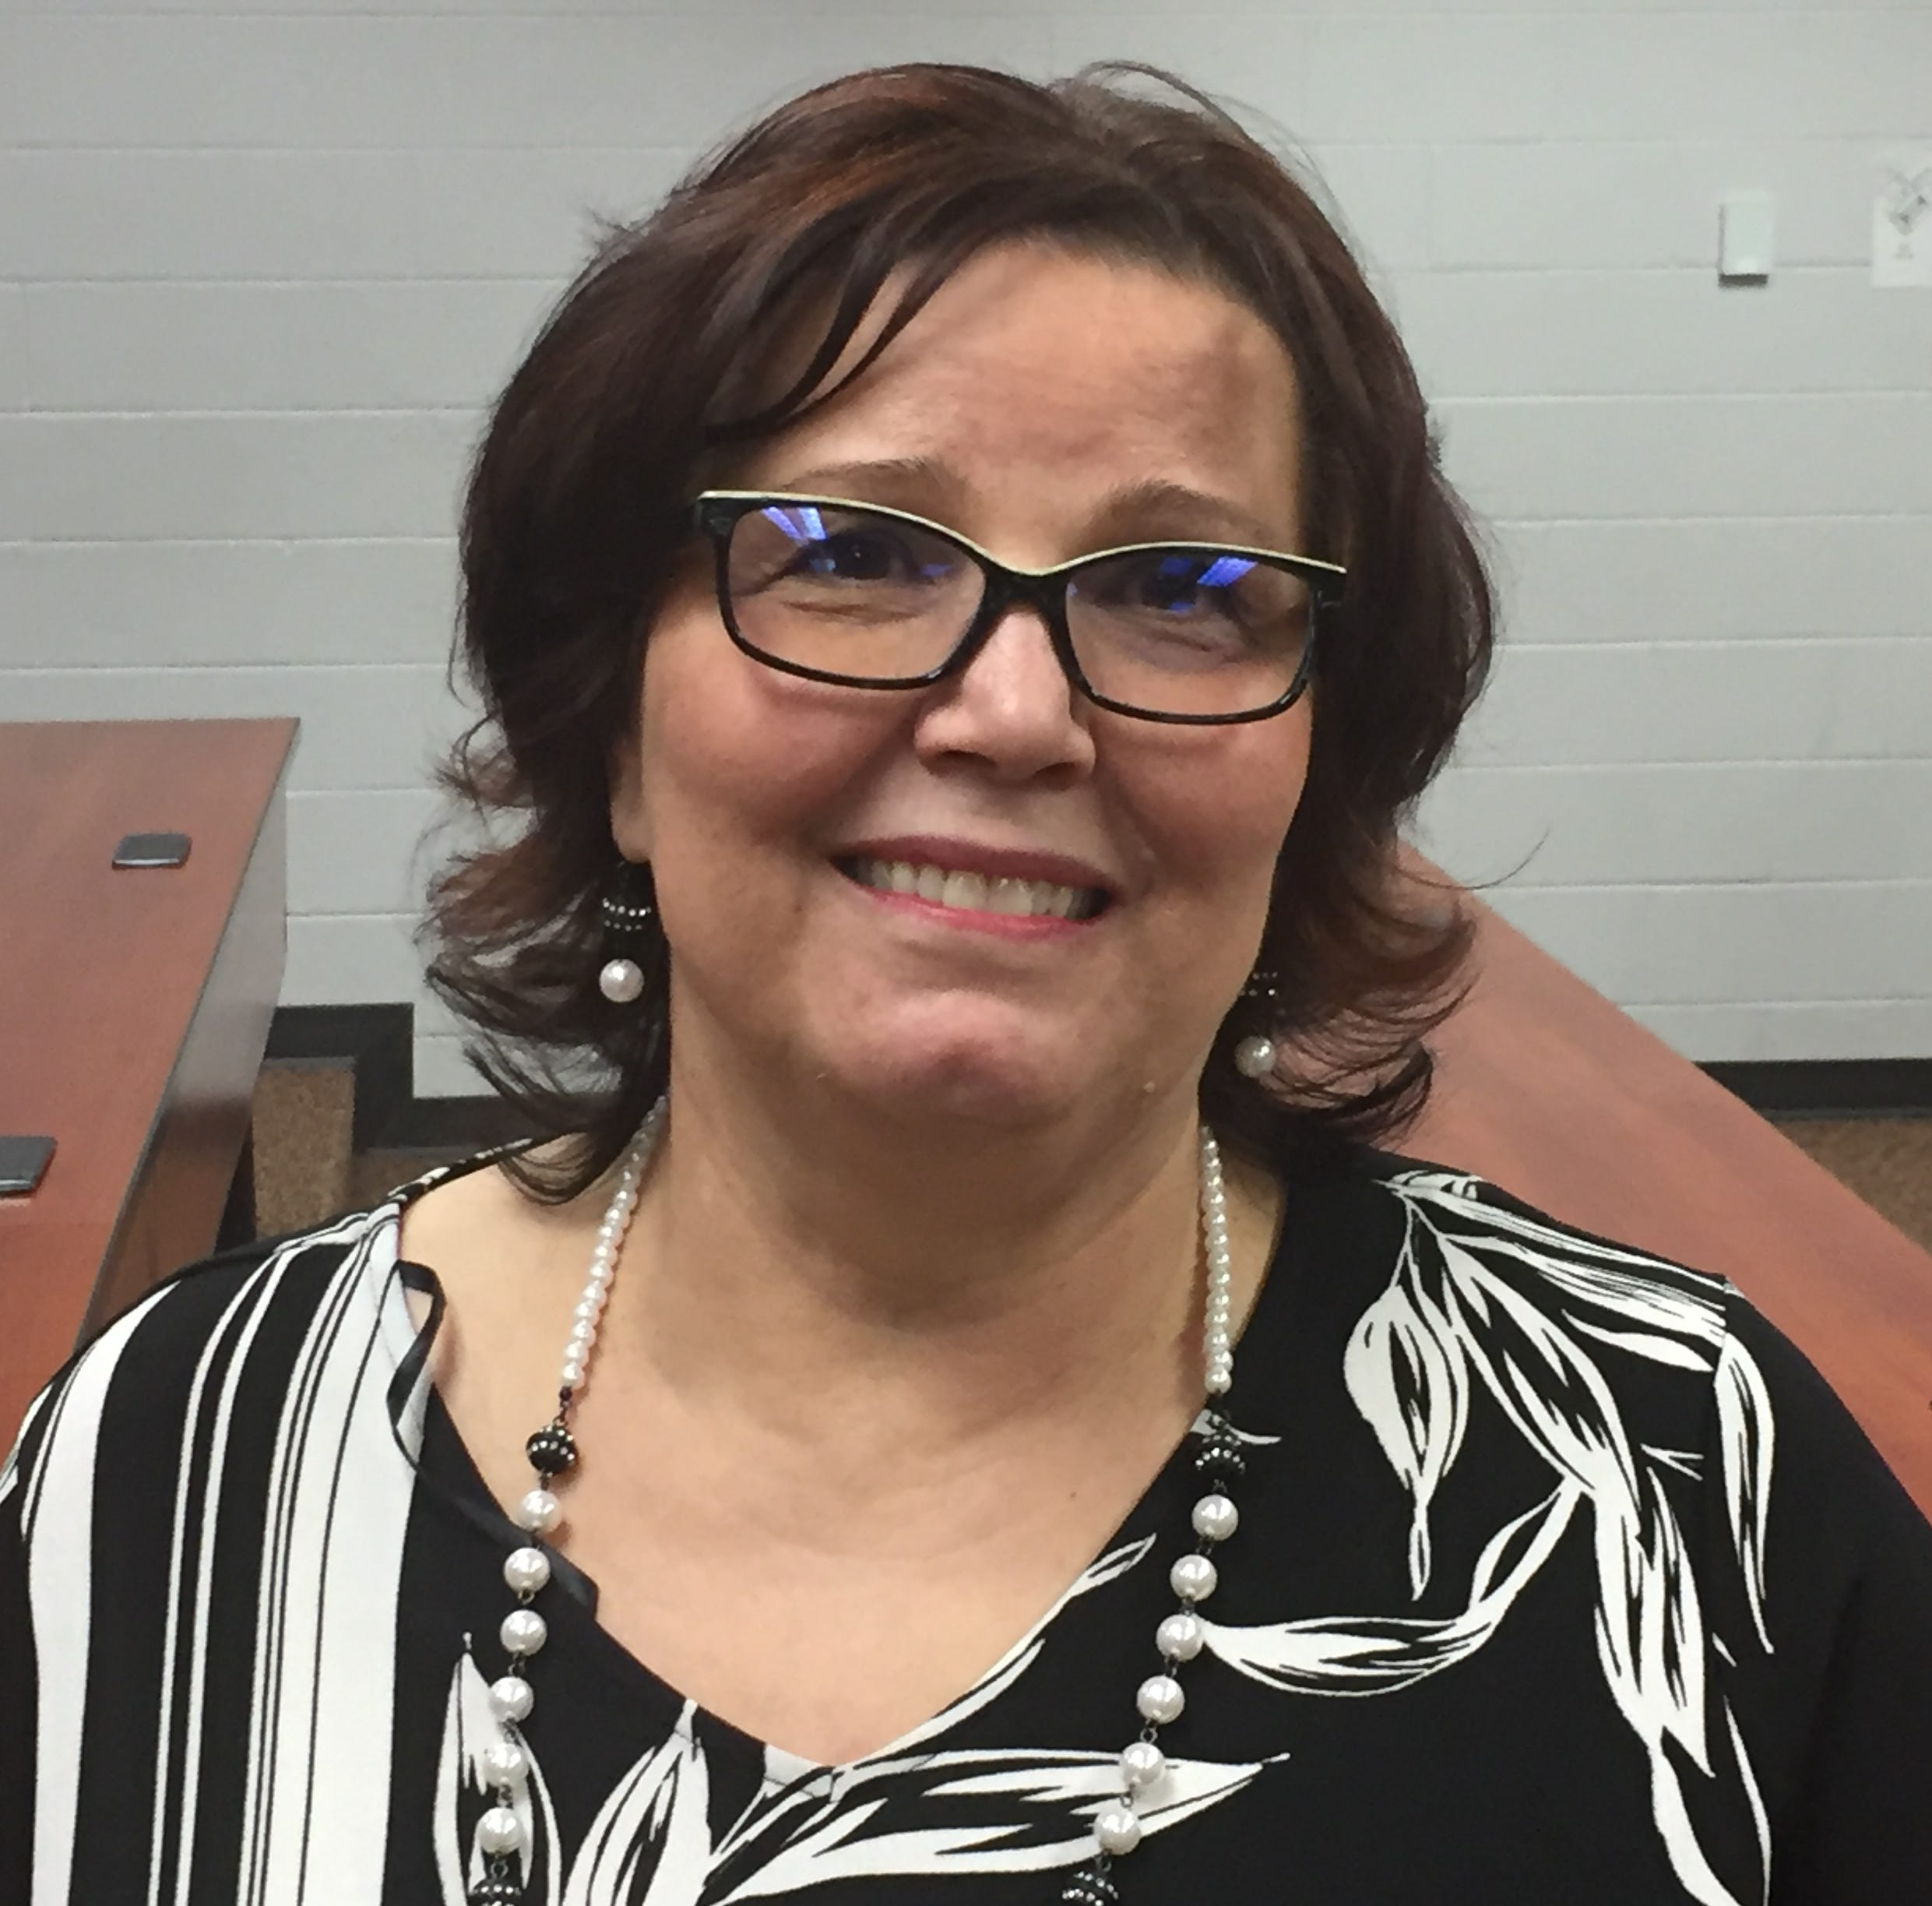 Shelby school board hires new treasurer to replace Anatra